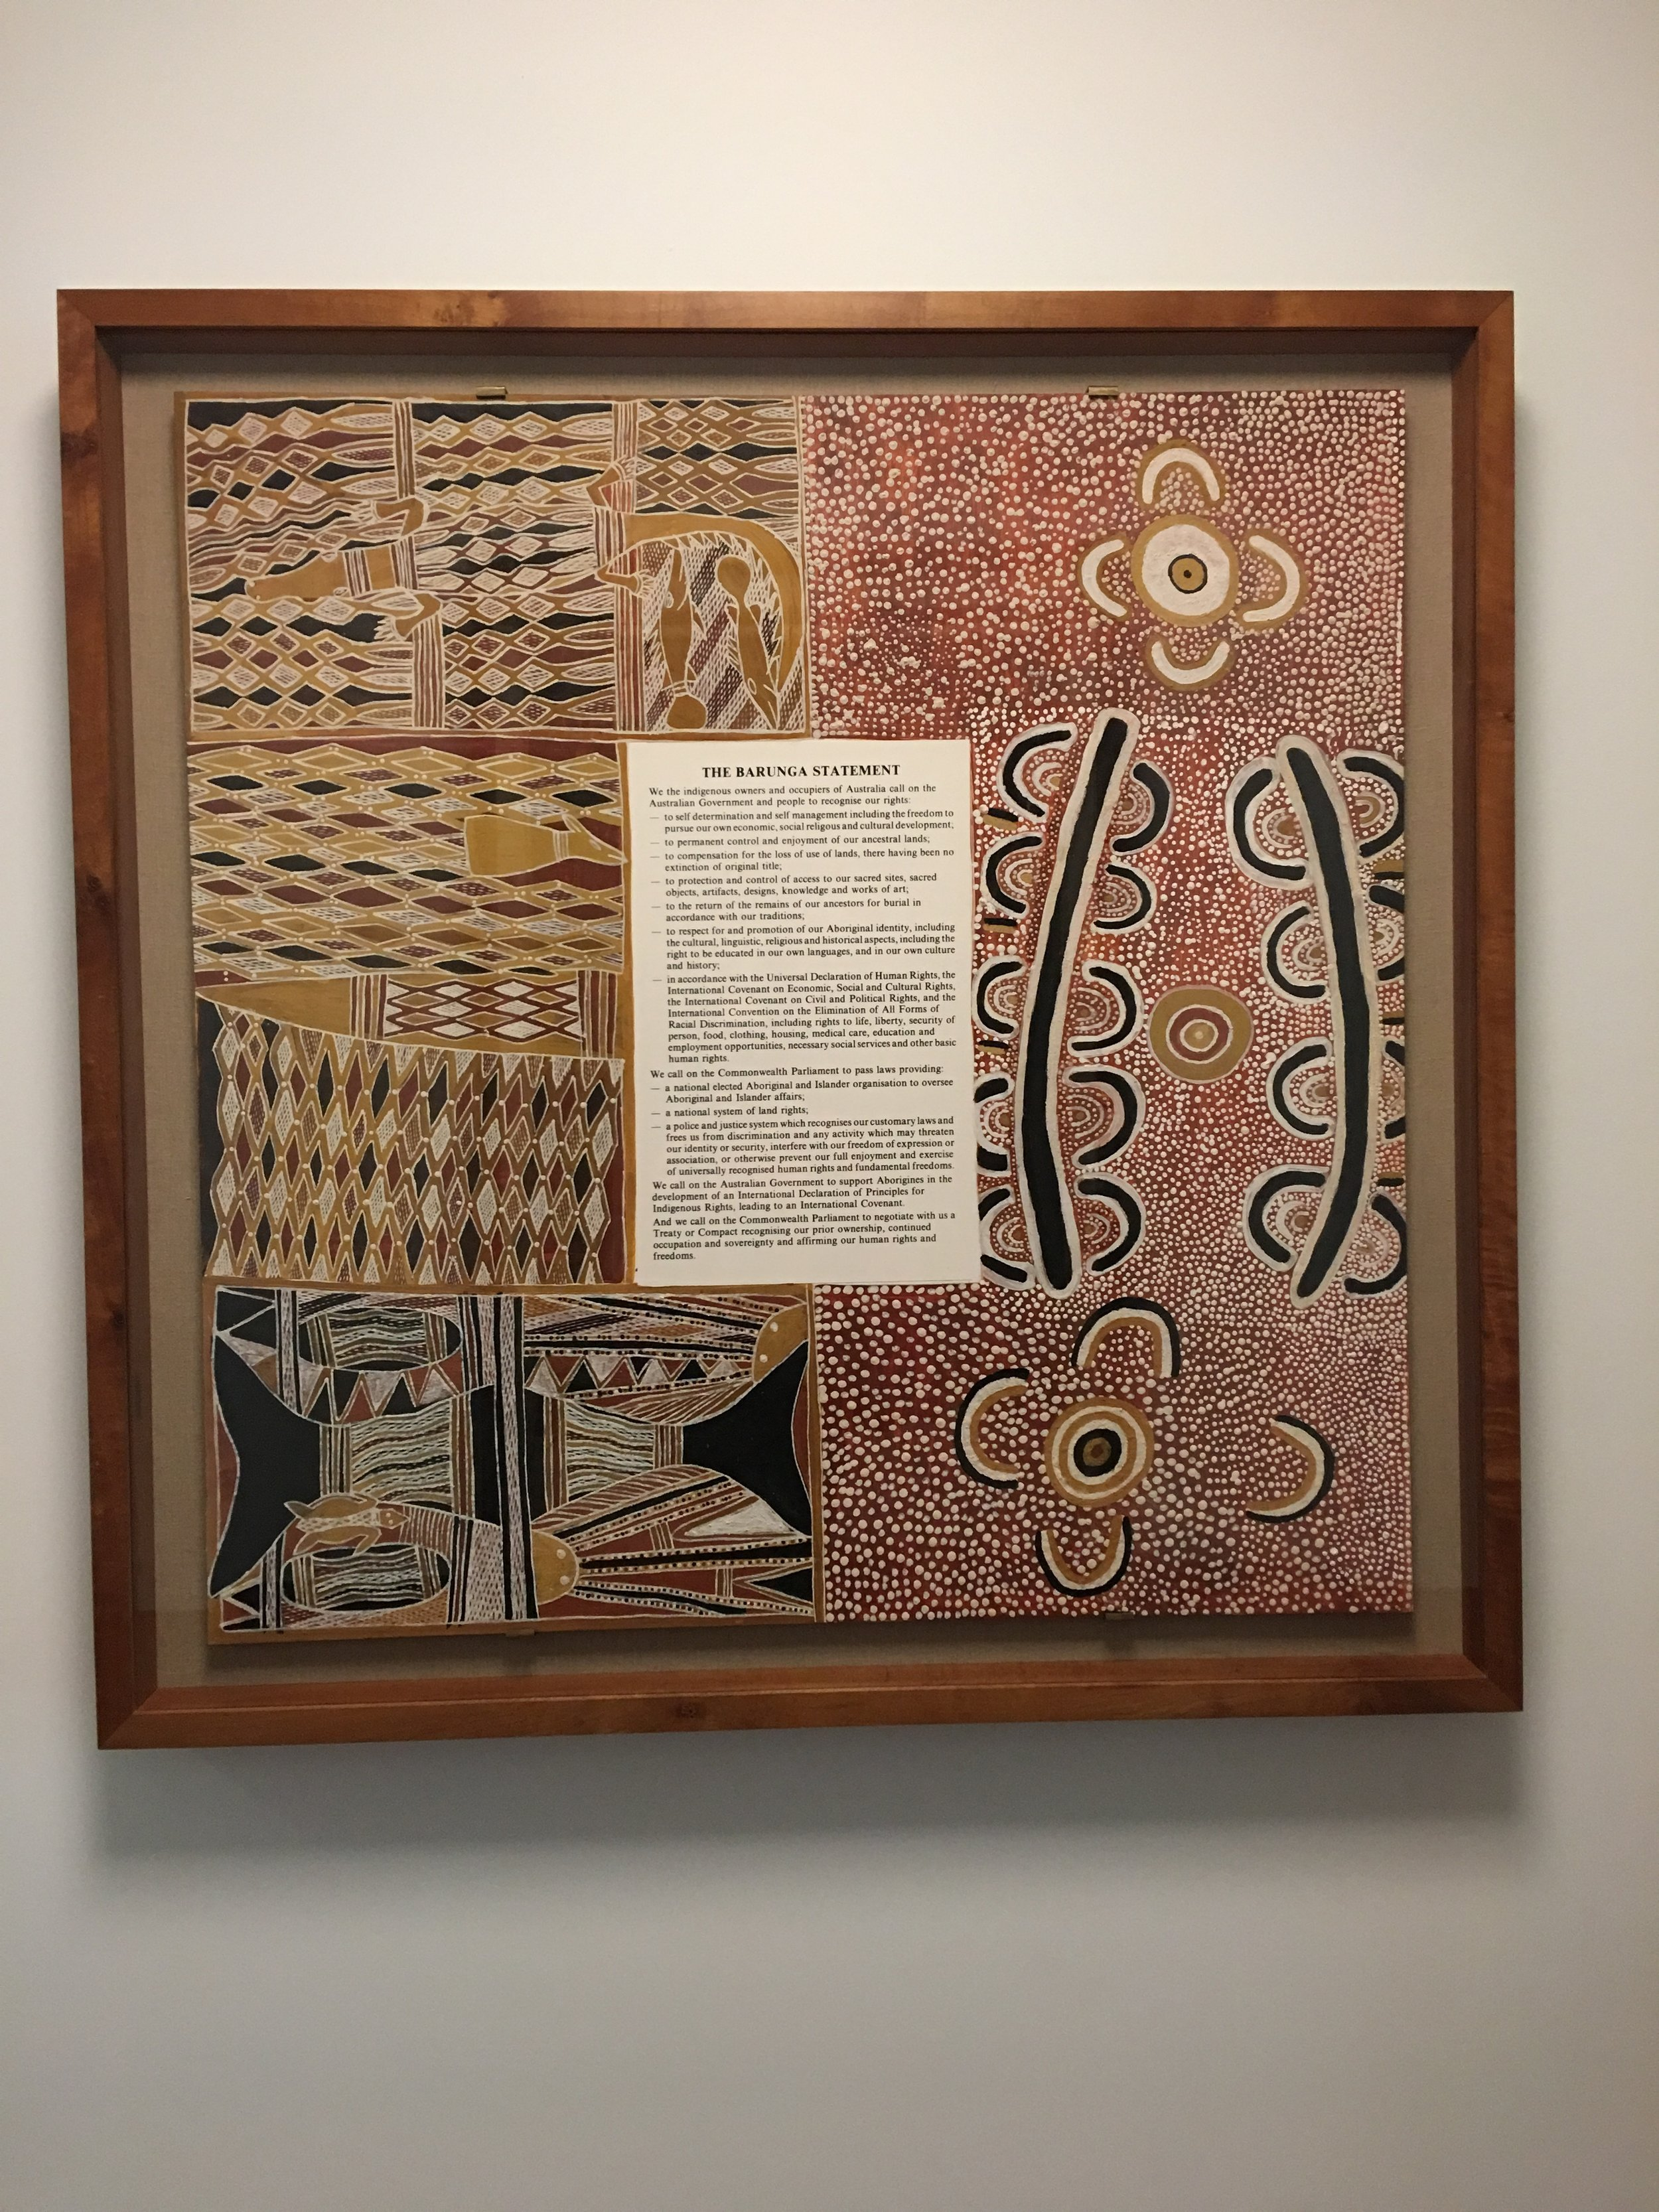 Included in the Parliament is a portrait of Senator Bonner, the first Aboriginal Senator in 1971, who famously demonstrated how to throw a boomerang outside parliament.